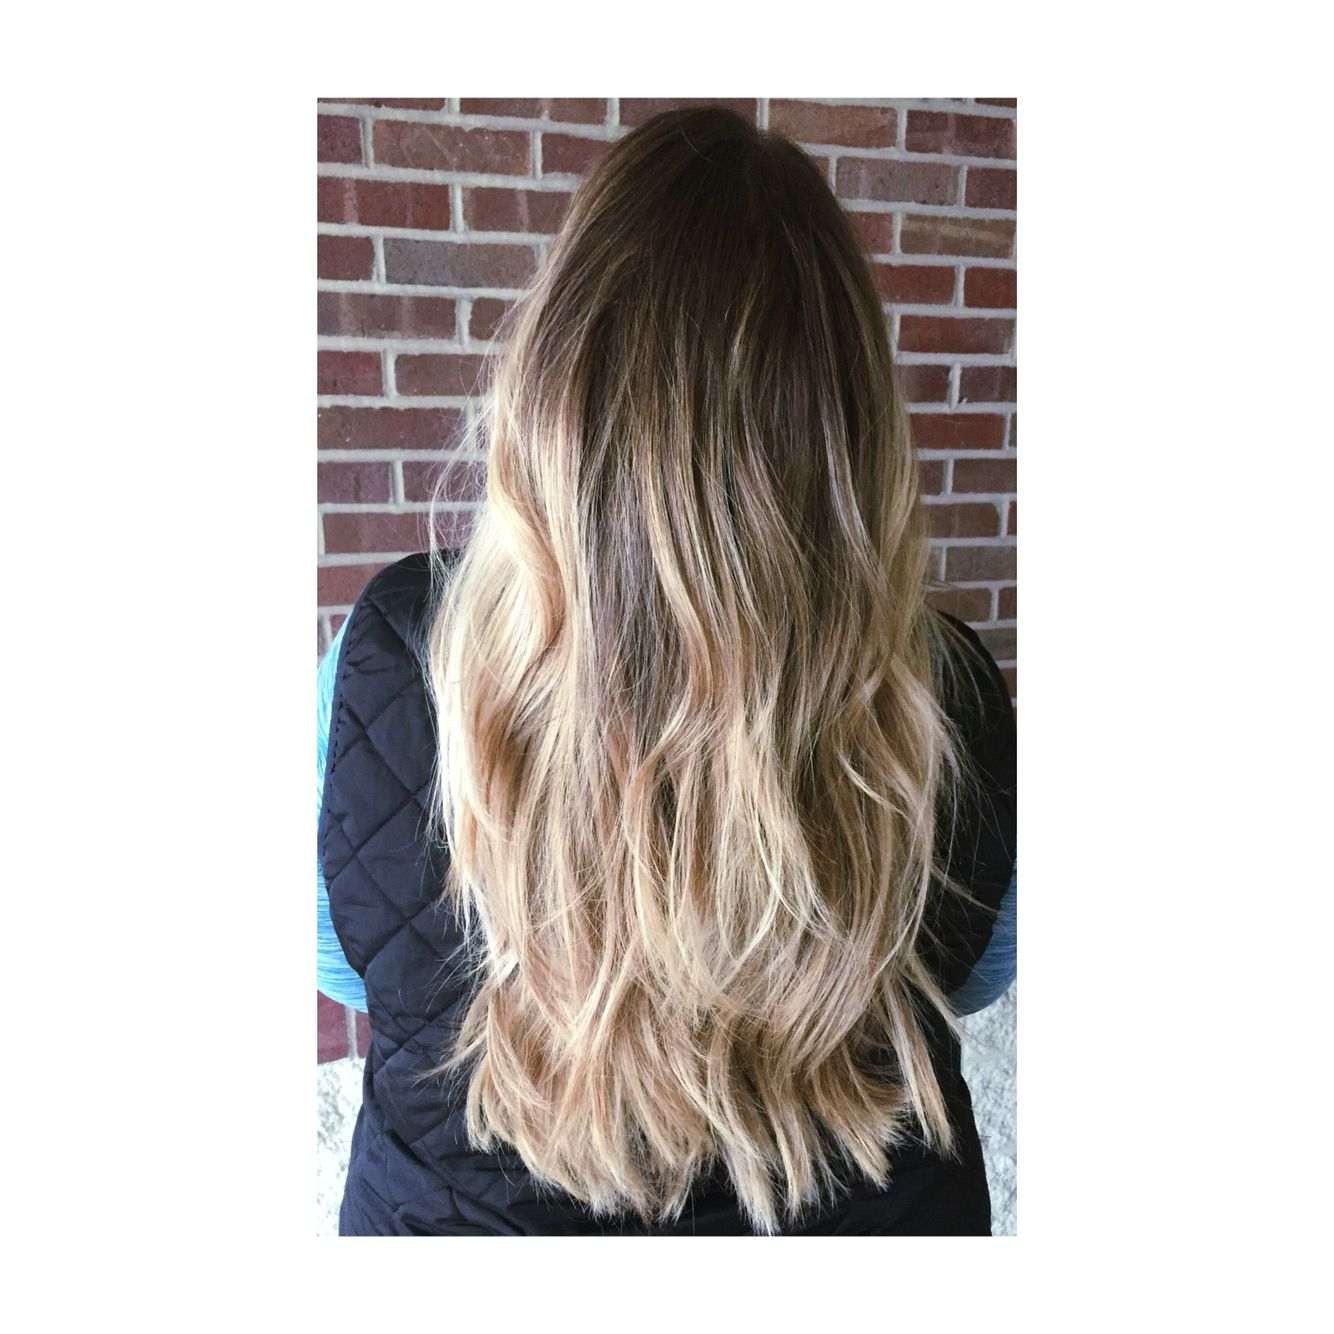 Bayalage hair hilights ombre blonde H A I R Pinterest